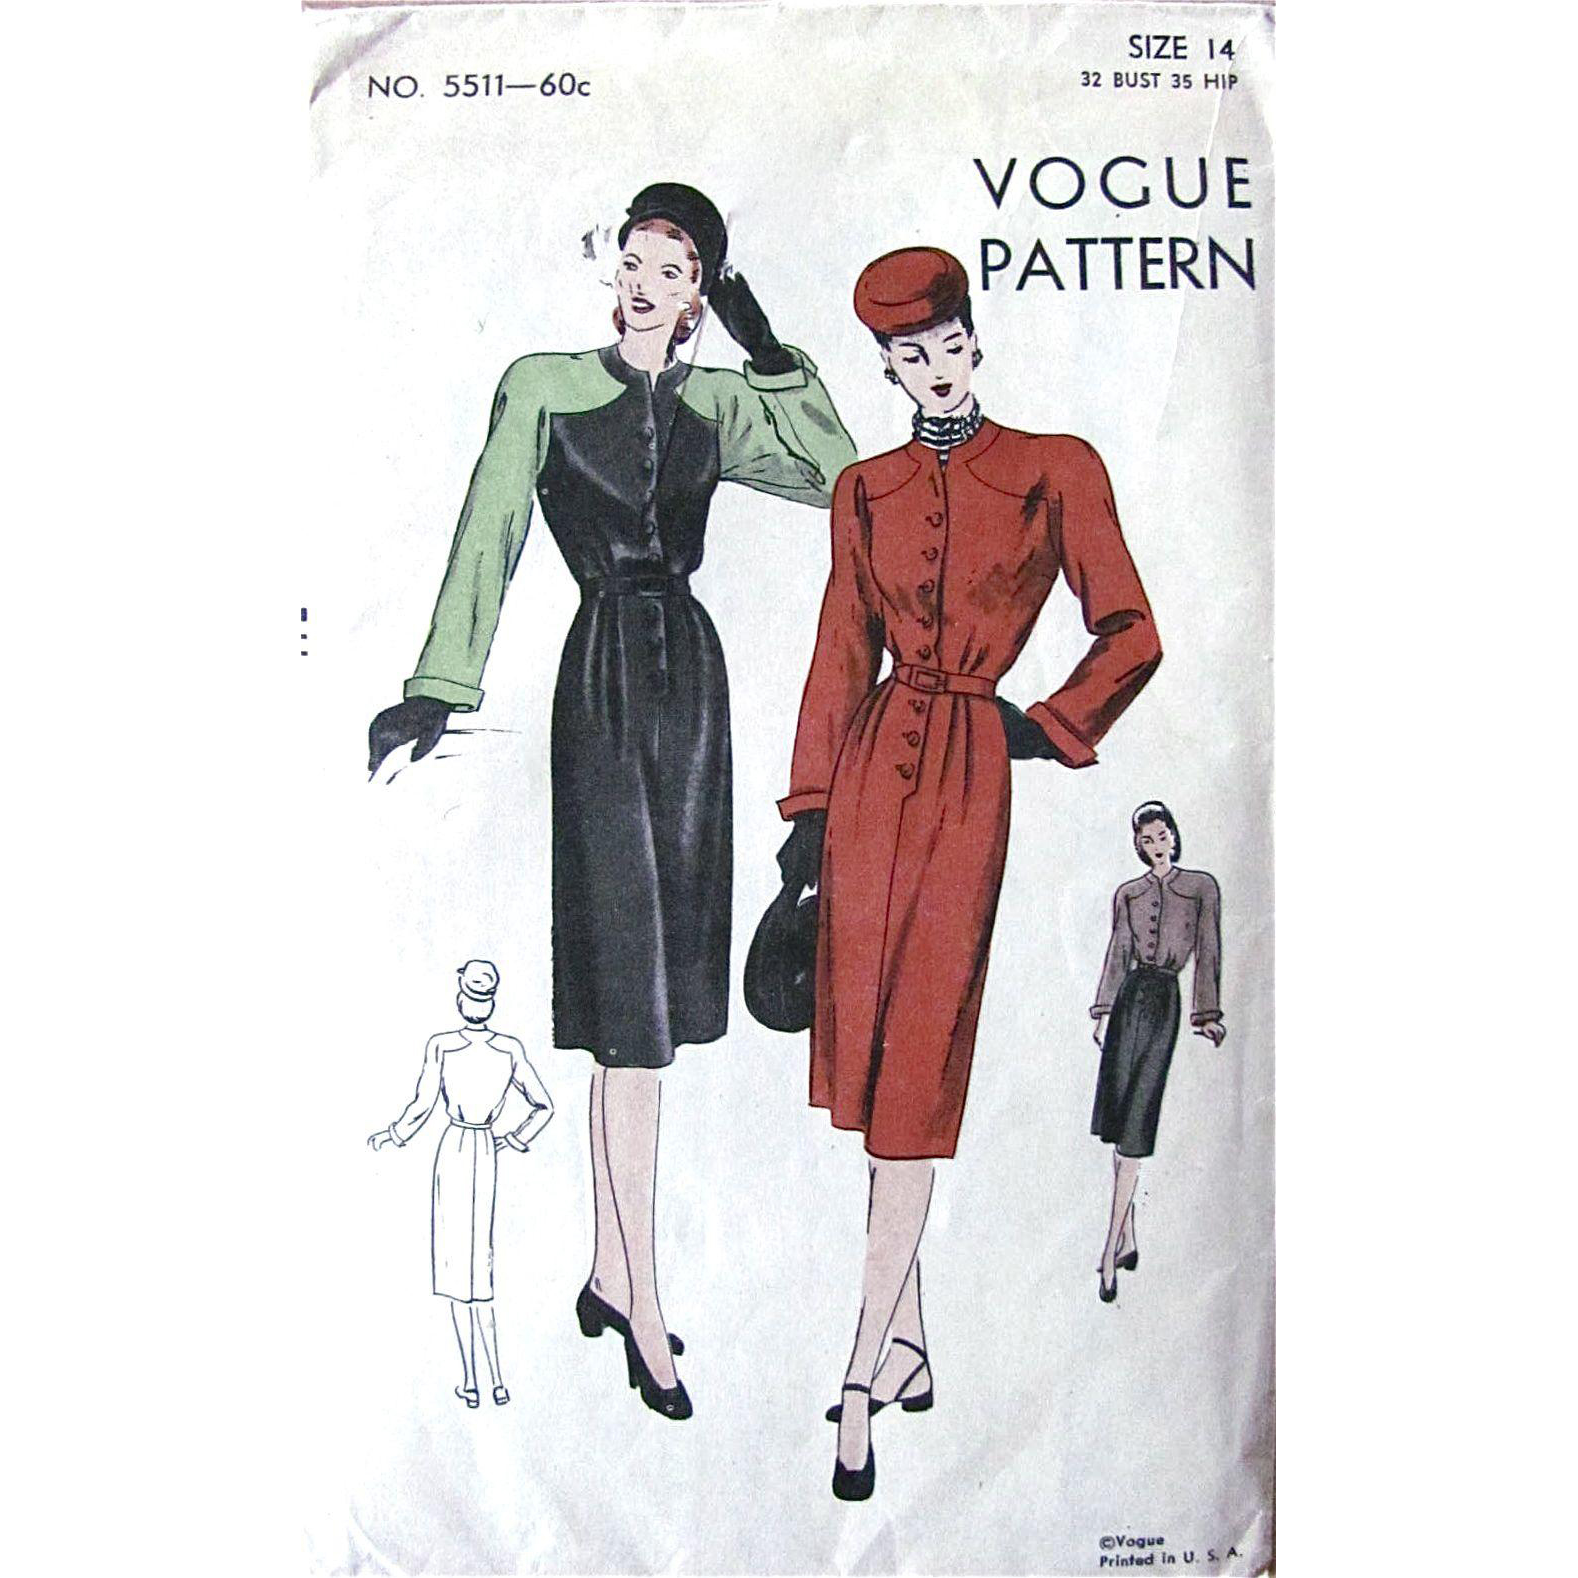 1940s Dress Pattern, Vogue 5511, Unused Factory Folded, Misses Size 14 Bust 32, Vintage 1940s